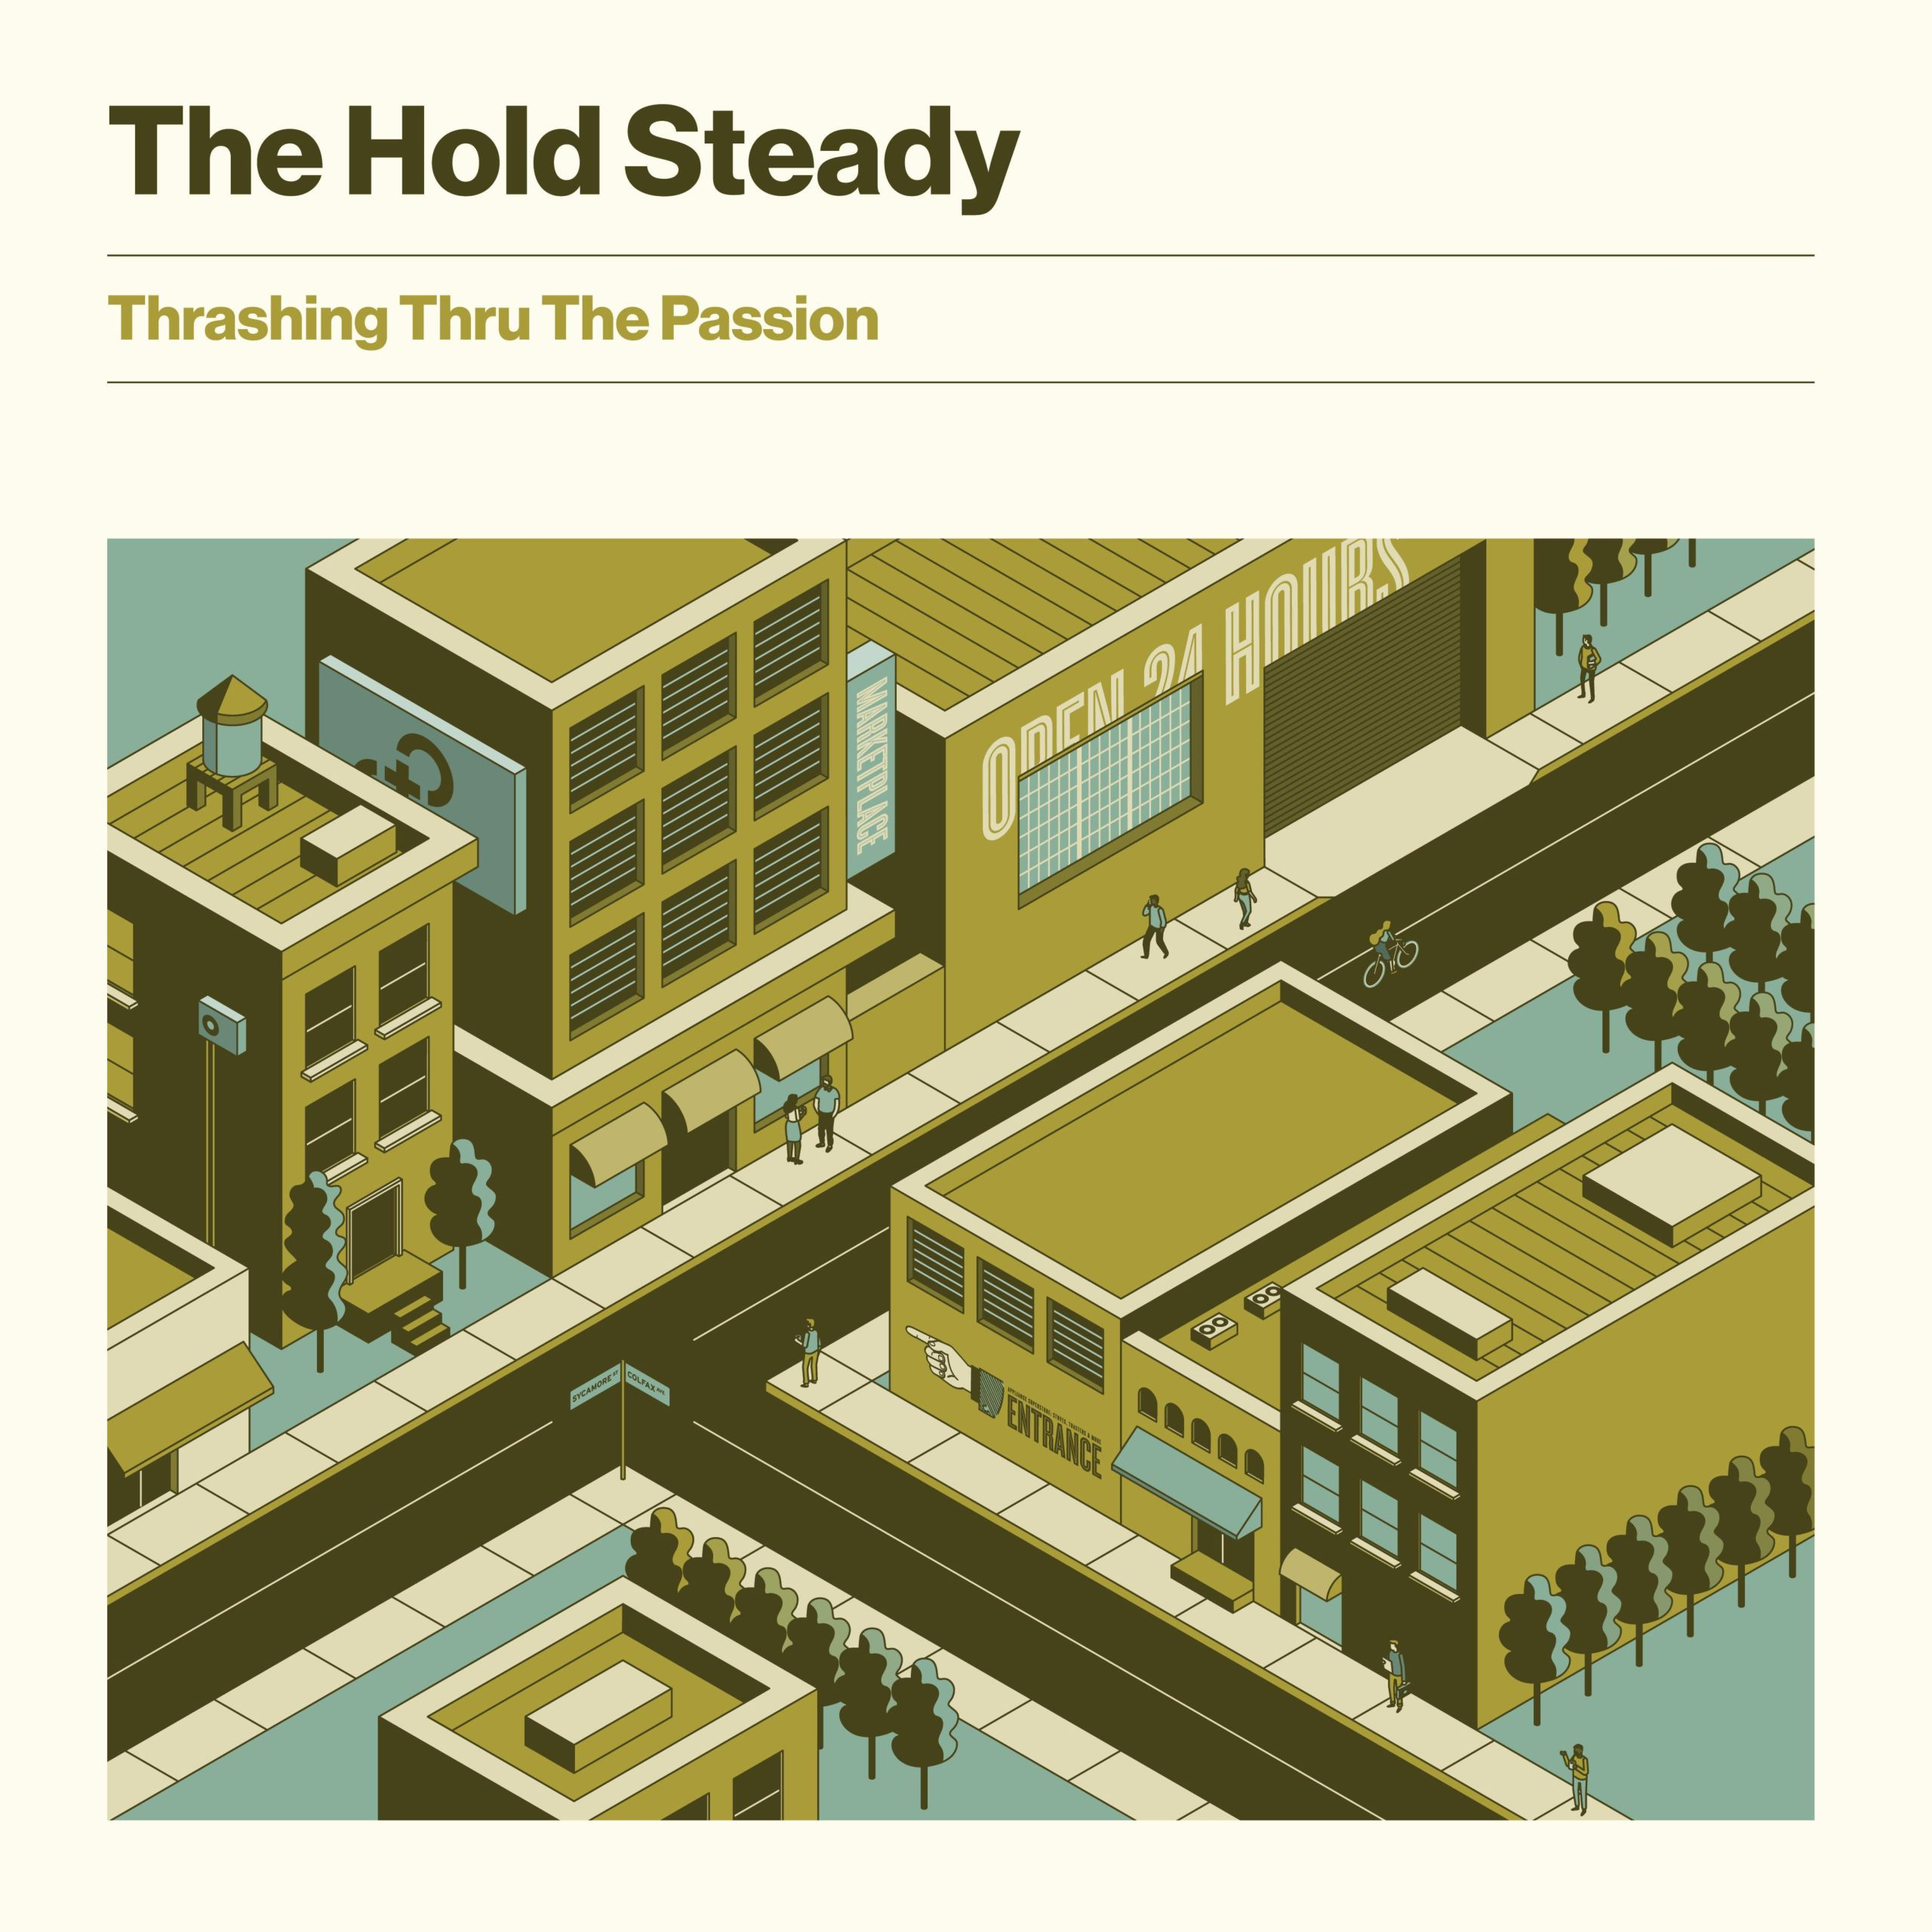 The Hold Steady Sets the Scene